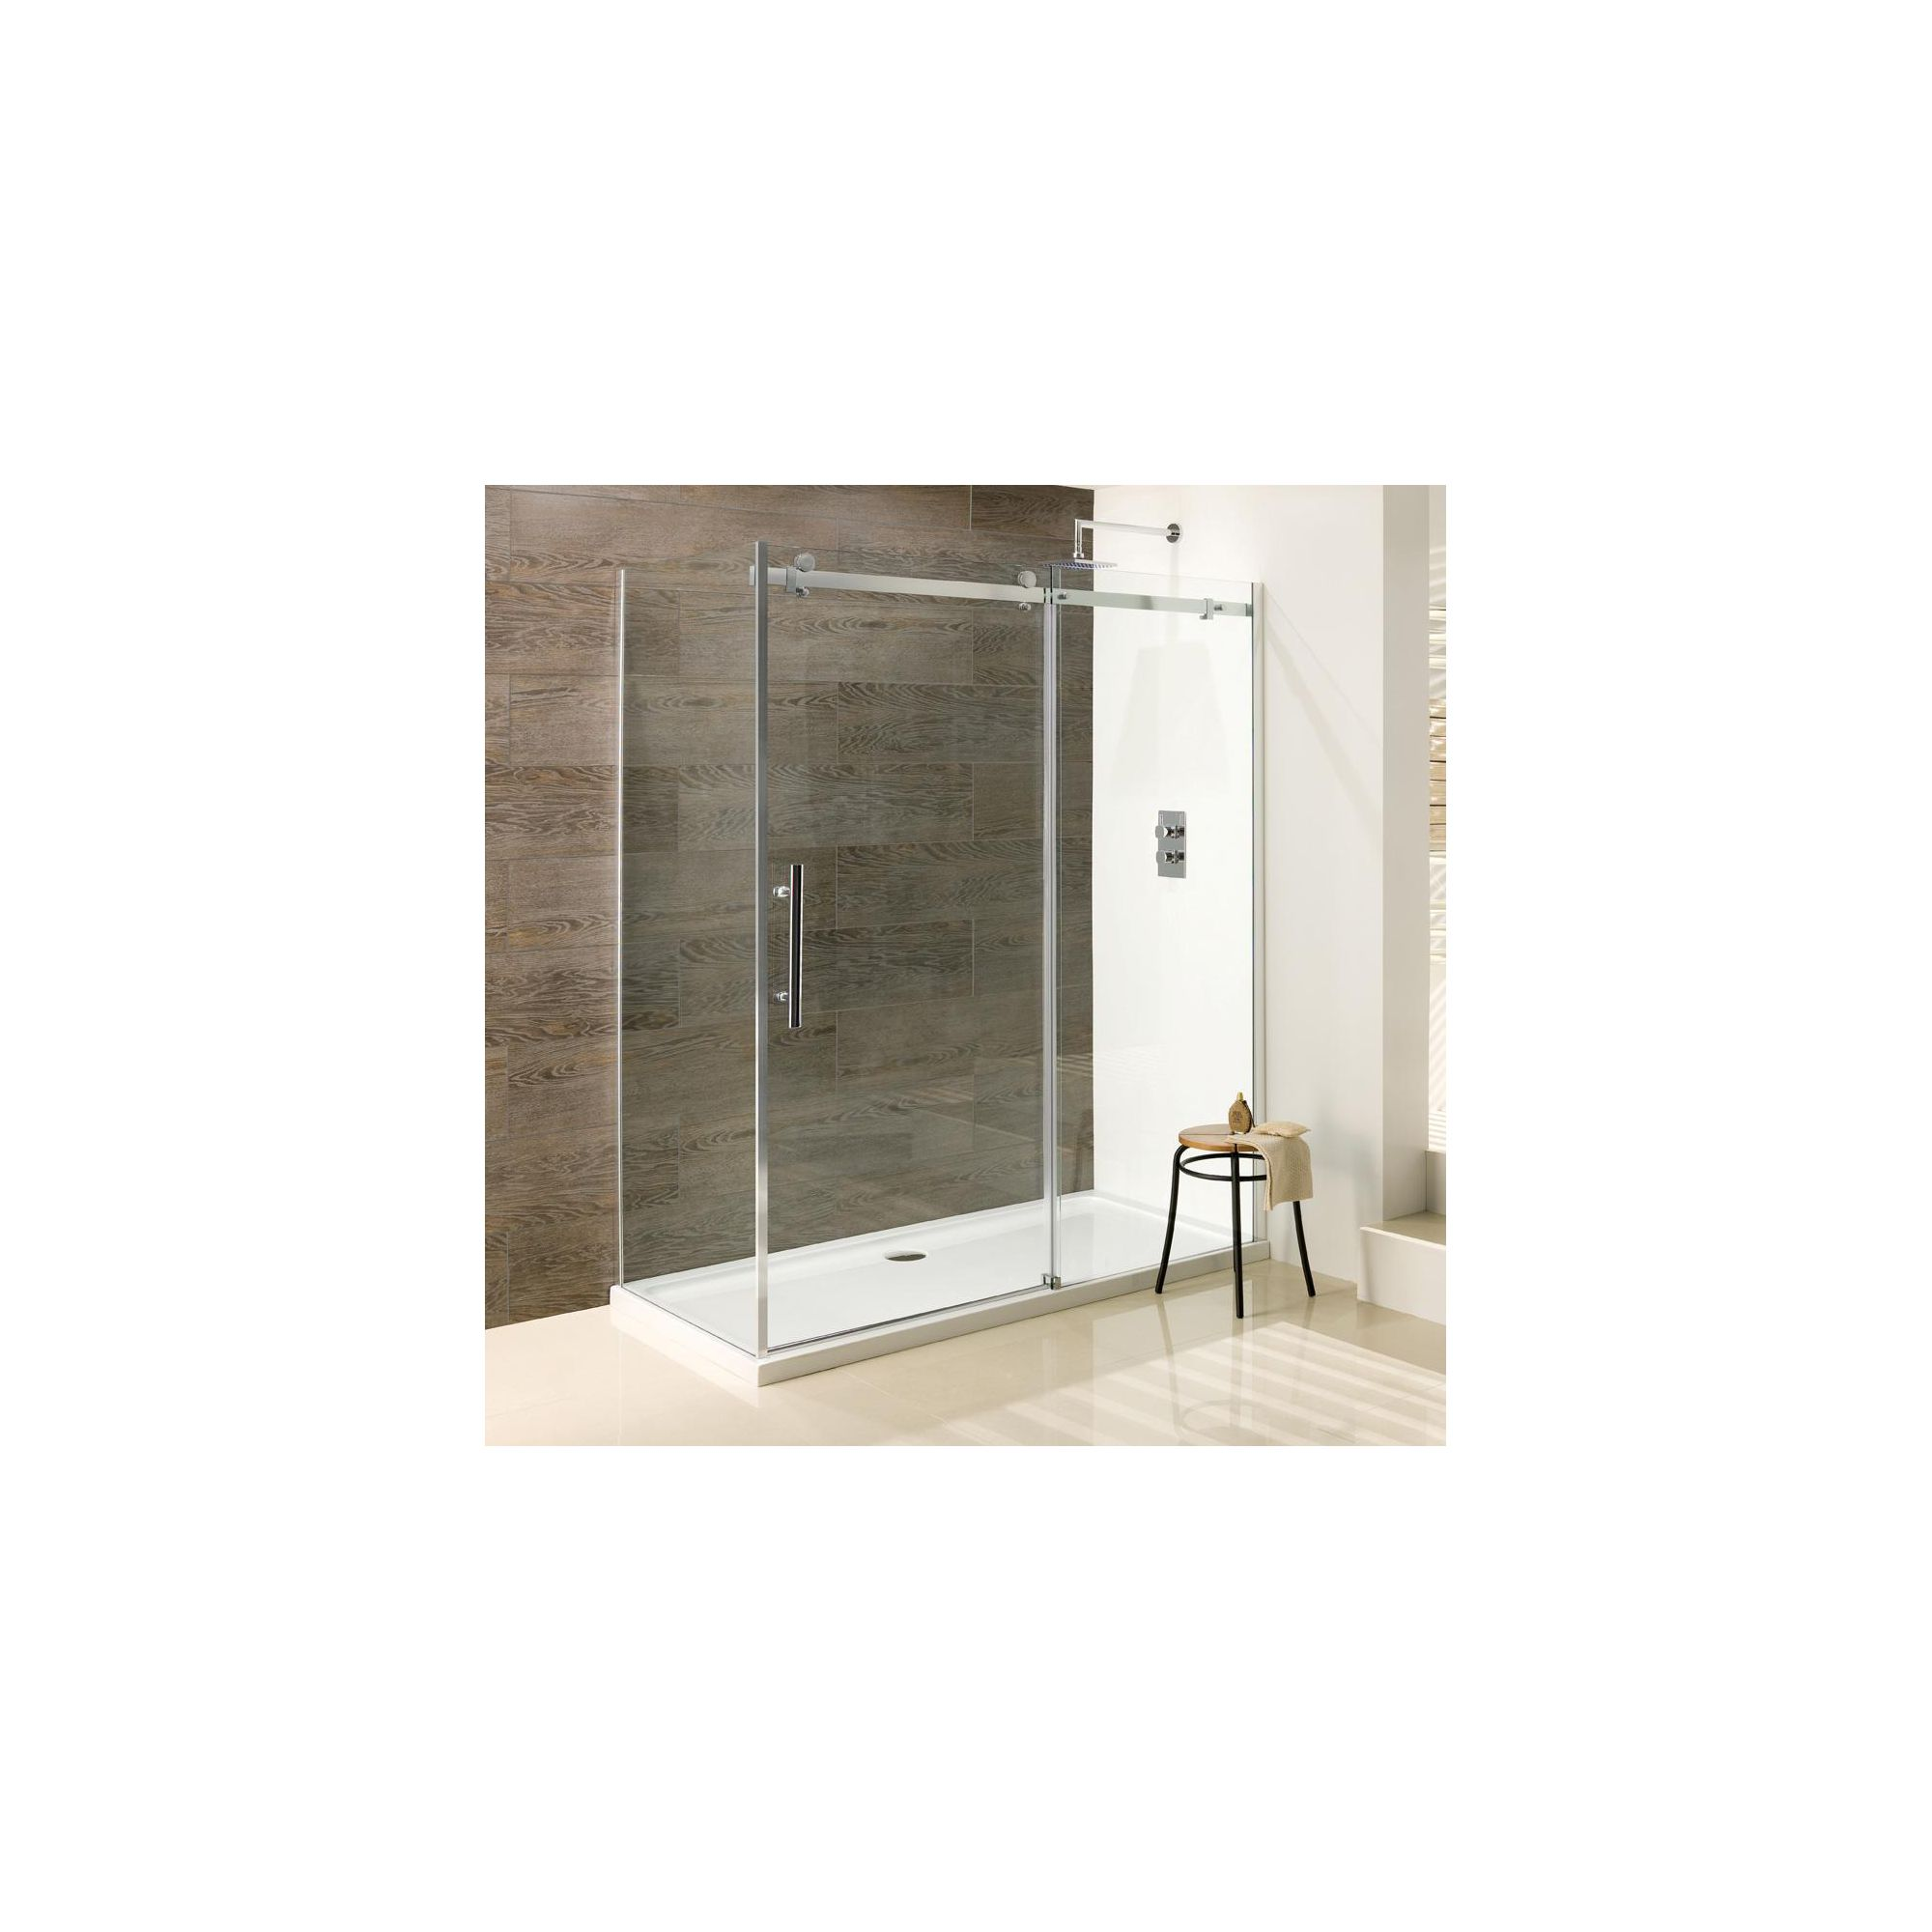 Duchy Deluxe Silver Sliding Door Shower Enclosure with Side Panel 1400mm x 900mm (Complete with Tray), 10mm Glass at Tesco Direct